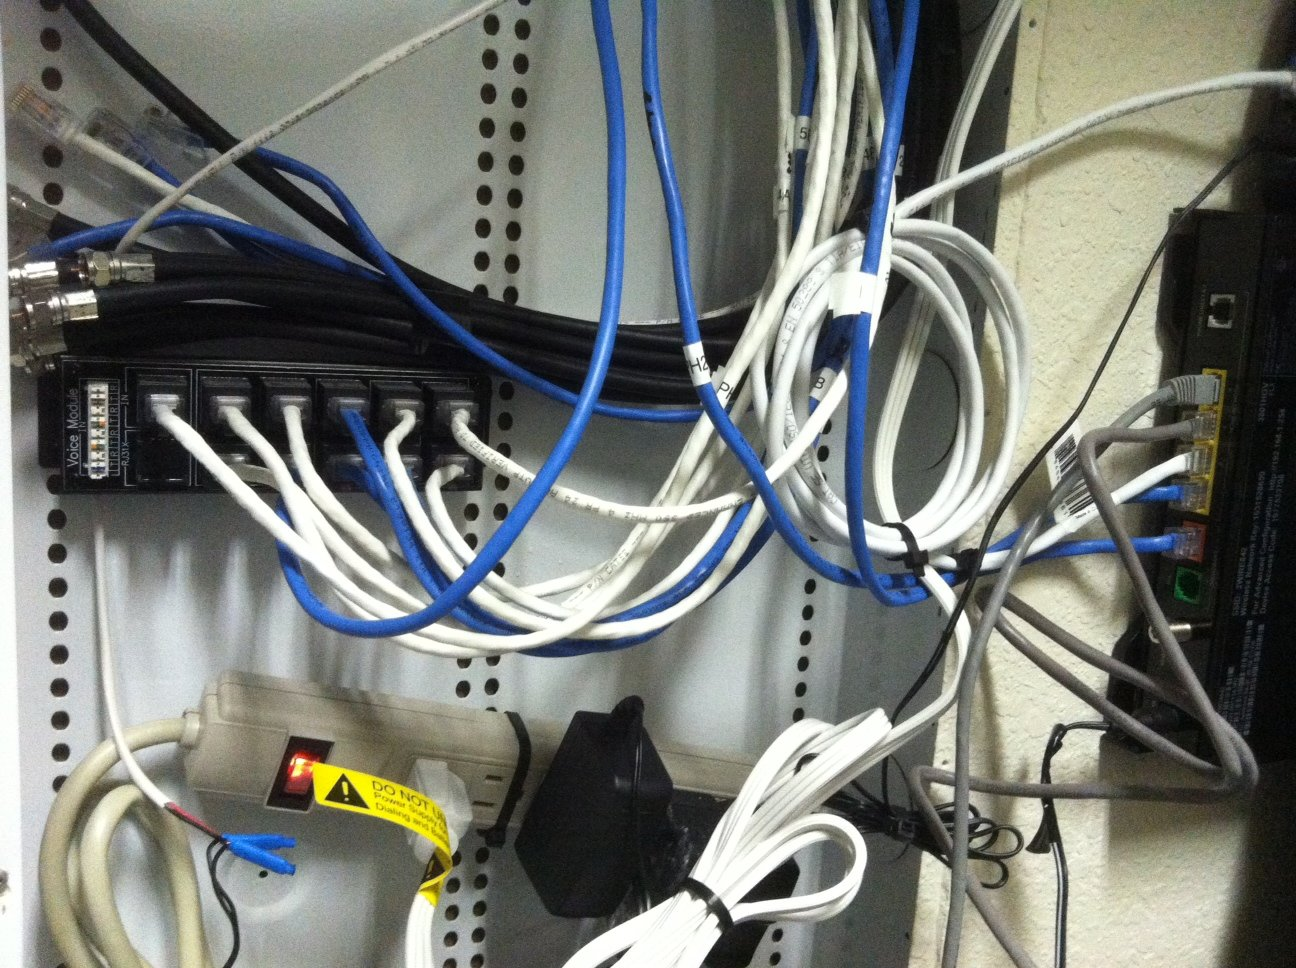 hight resolution of i have att u verse a bunch of ethernet cables plugged into something like a switchboard maybe it s not